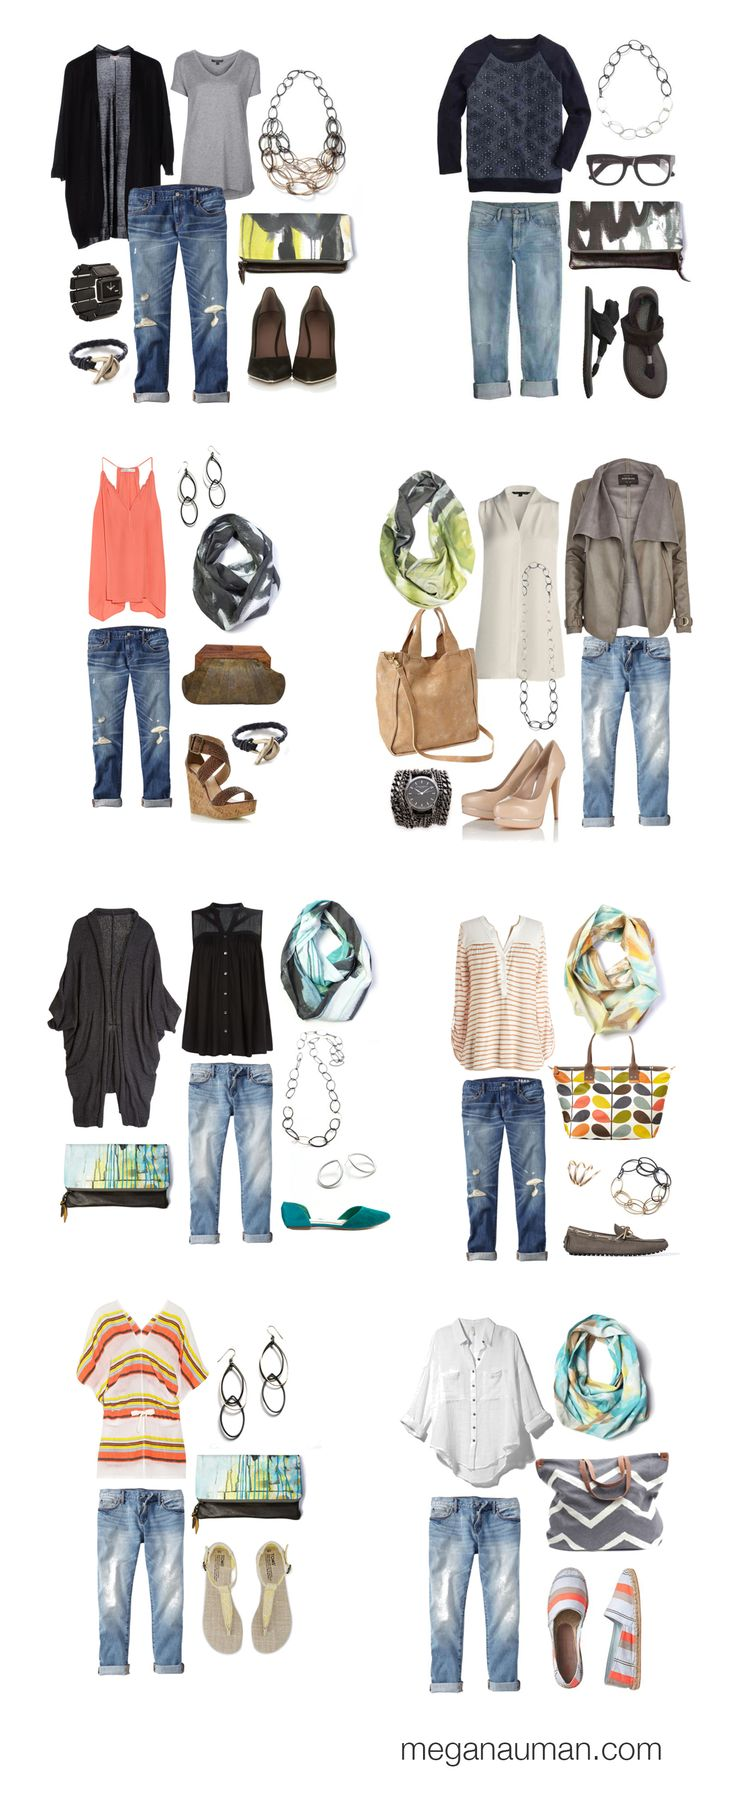 8 ways to wear boyfriend jeans // click through for outfit details (plus lots more outfit inspiration)